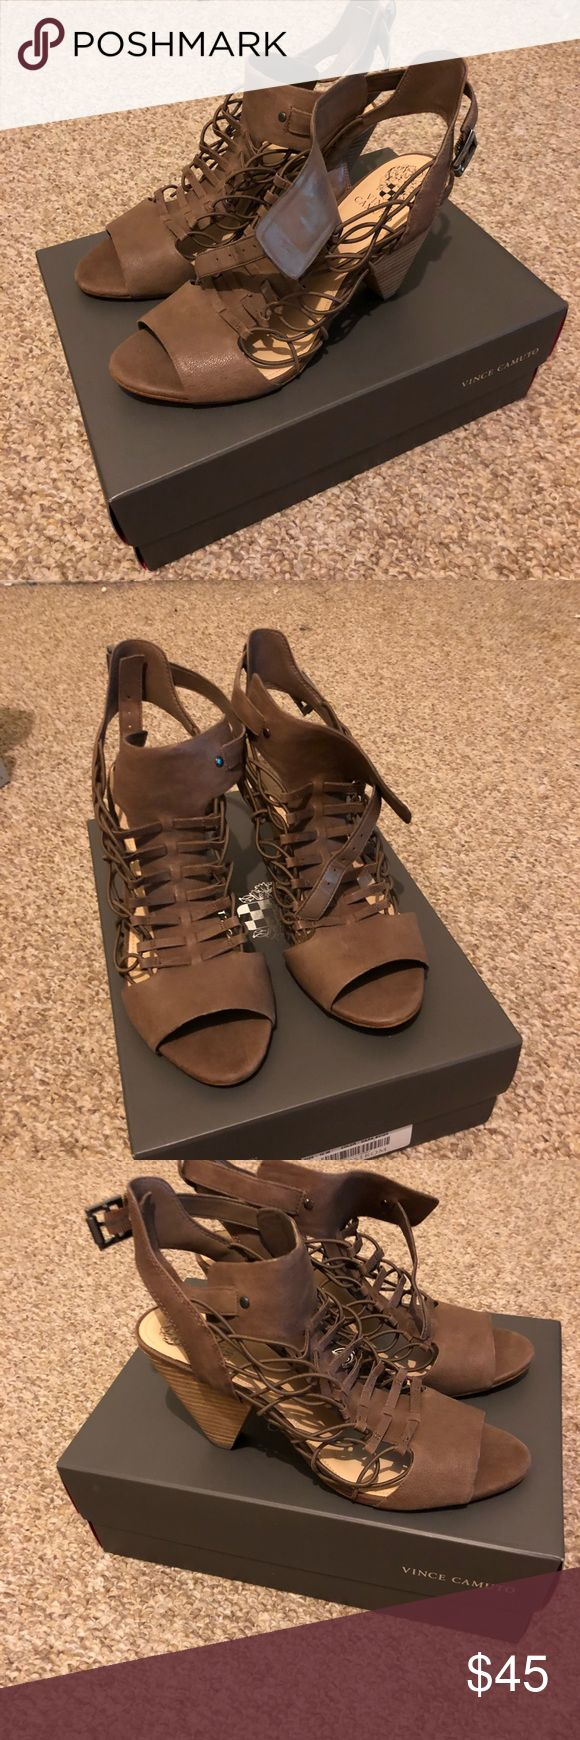 VC-EVEL Vince Camuto Evel sandals that I purchased at Nordstrom and never ever wore...I only tried them on once.   Size 10M, Leather, buckle closure...BEAUTIFUL.  Great Price. Thanks for looking.  Paypal, Debit, and credit card only no Exceptions!!!! Vince Camuto Shoes Sandals